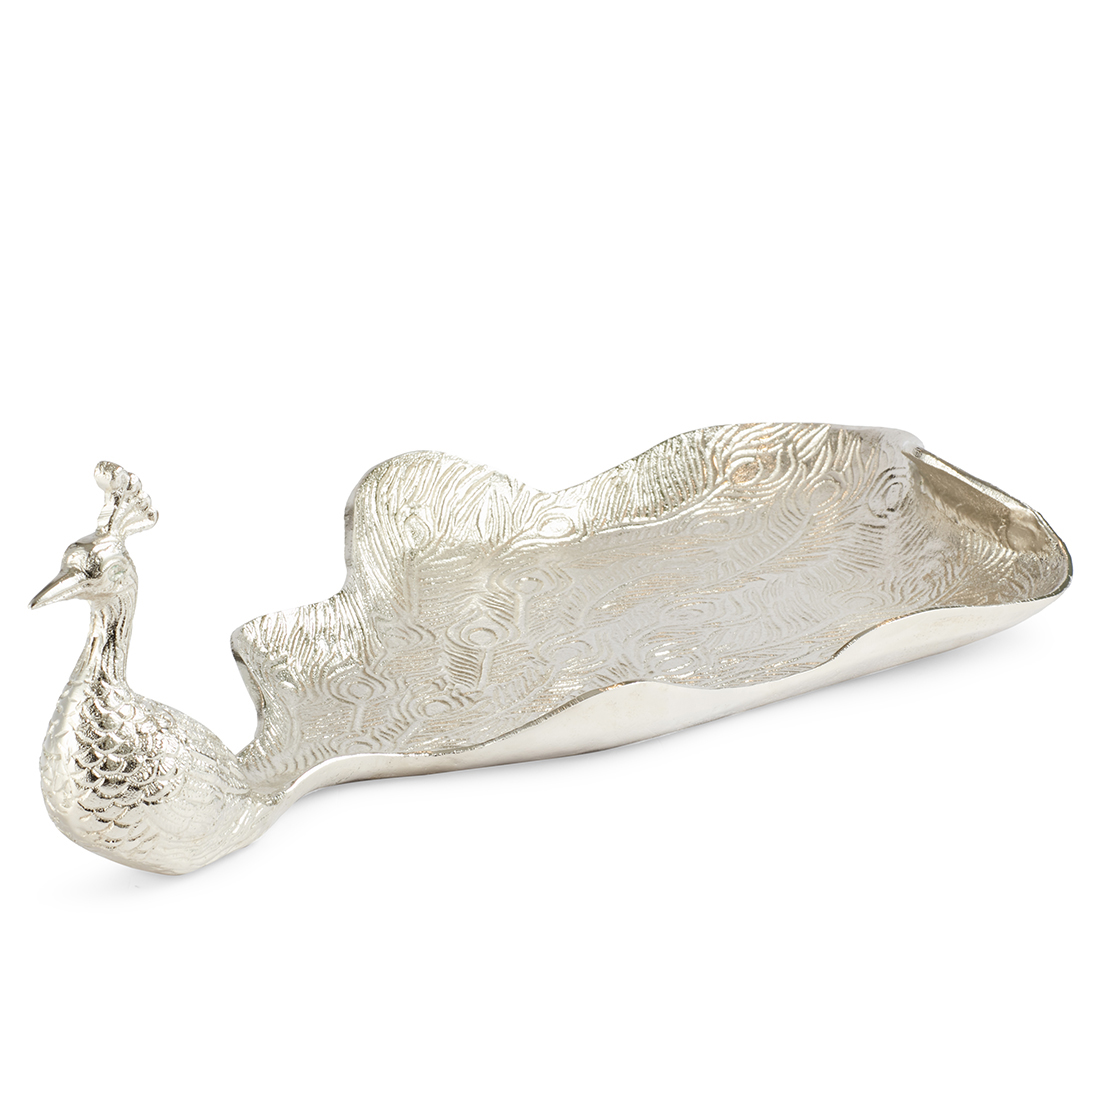 Jashn Silver Peacock Shaped Platter Metal Table D in Silver Colour by Living Essence